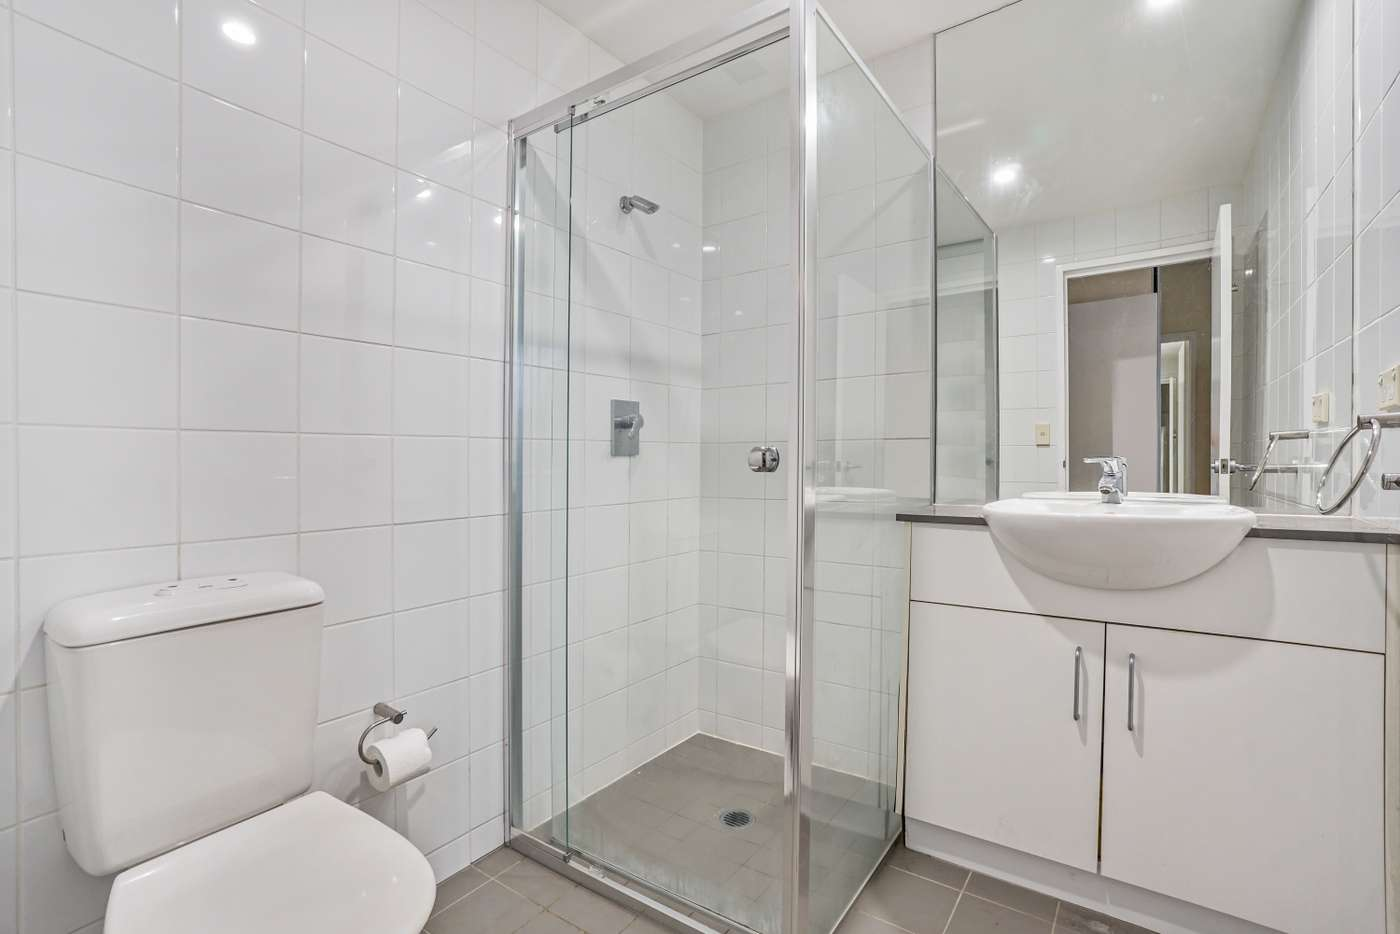 Fifth view of Homely apartment listing, 8/8 Grandstand Pde (Access via 28 Gadigal Av), Zetland NSW 2017